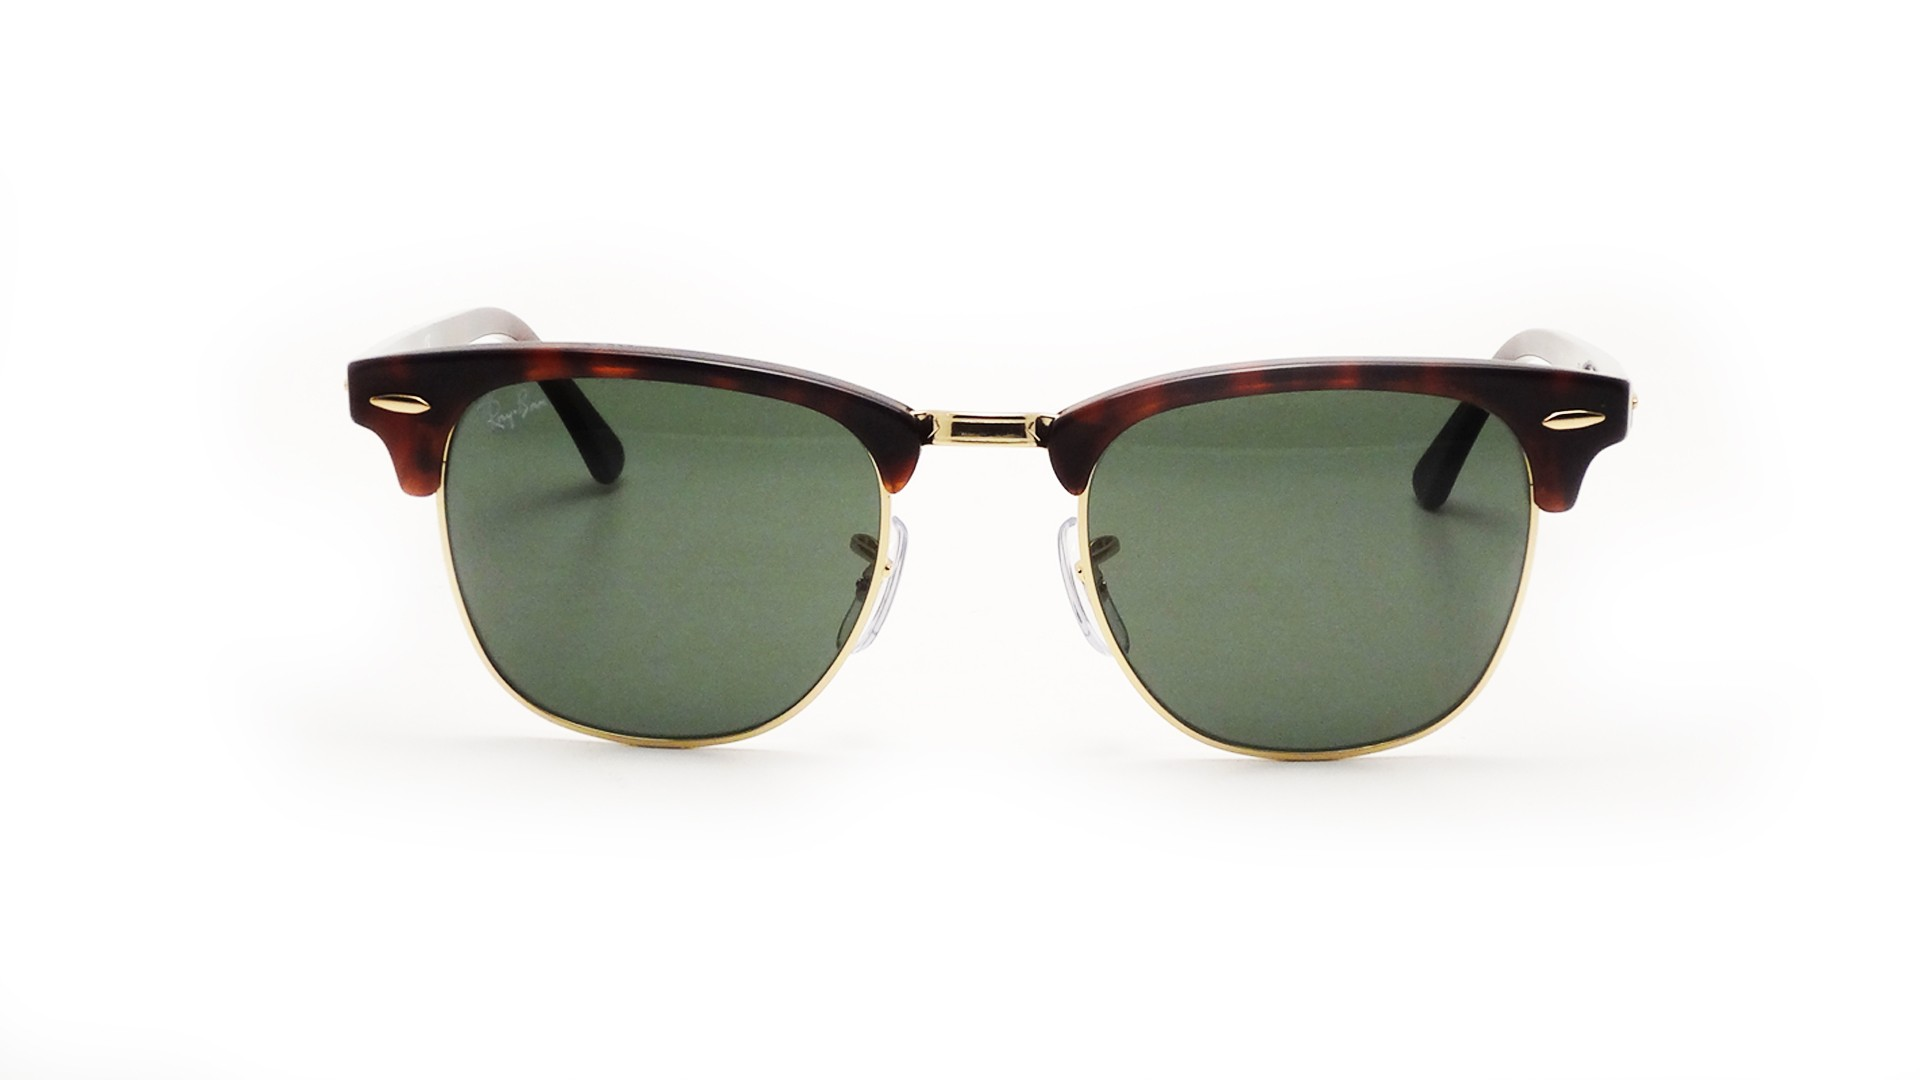 d01aa1251d Sunglasses Ray-Ban Clubmaster Classic Tortoise RB3016 W0366 49-21 Small